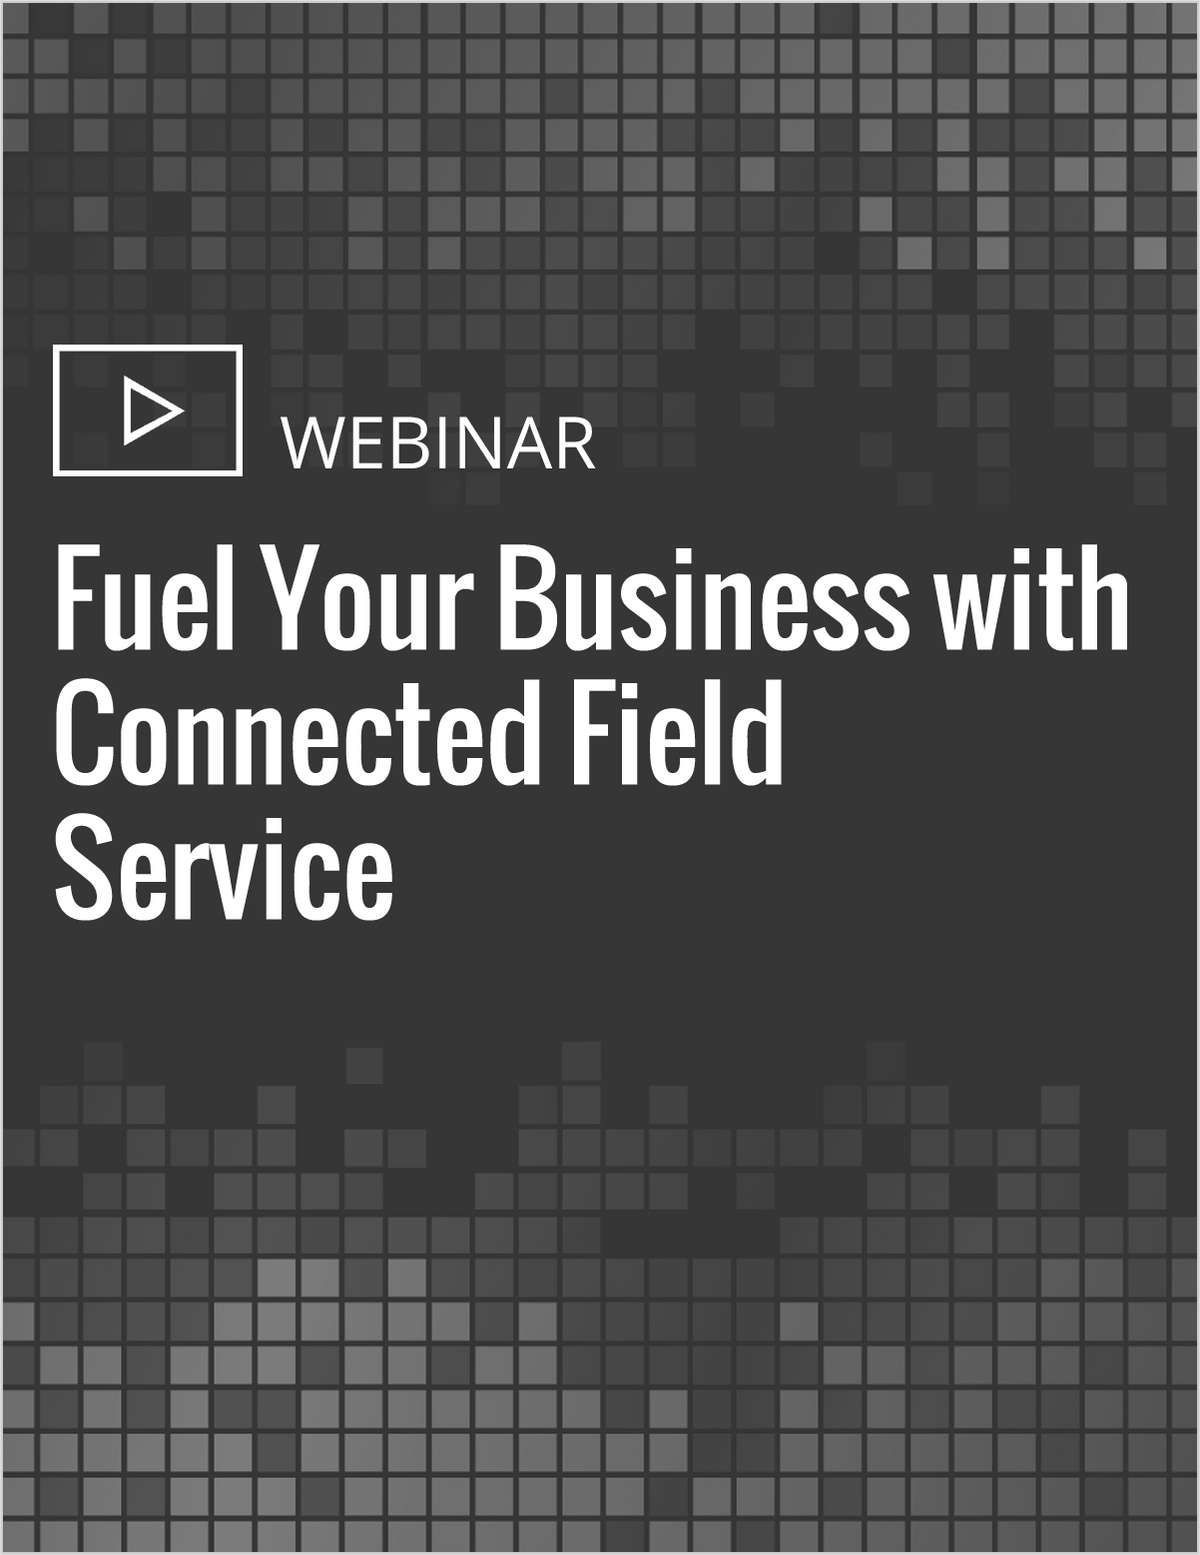 Fuel Your Business with Connected Field Service